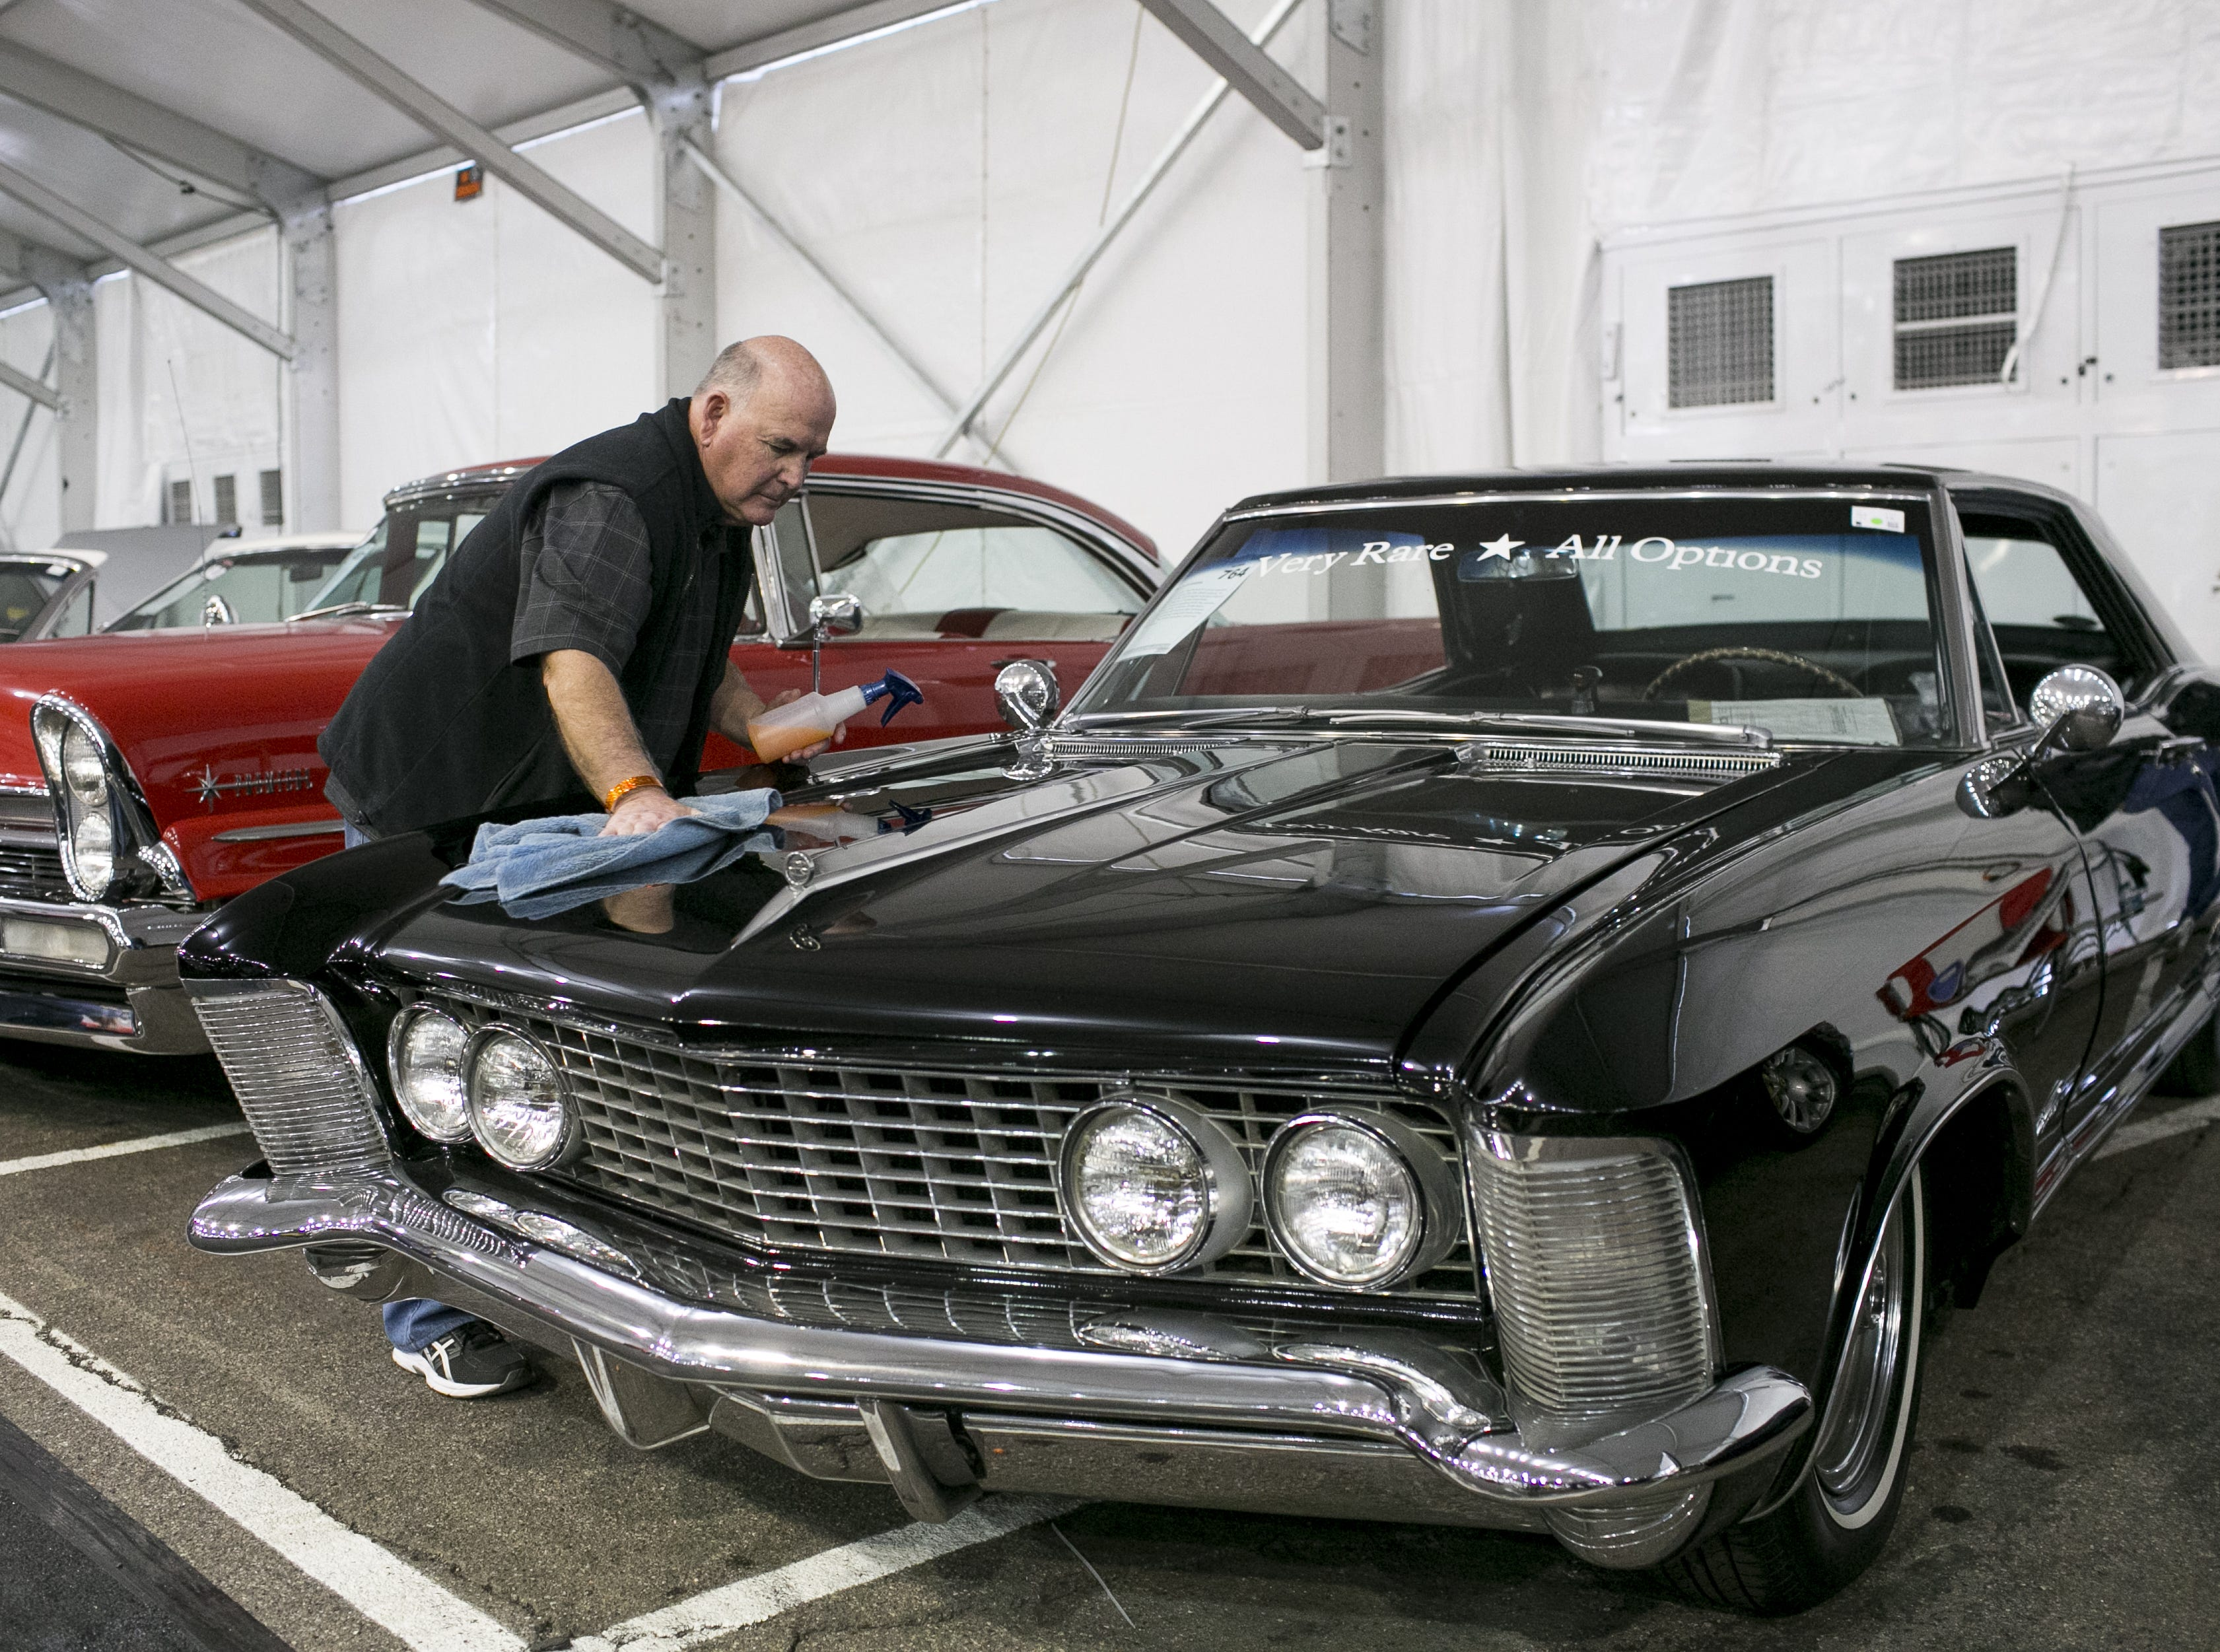 Greg Selvidge (left) cleans his 1964 Buick Riviera at the Barrett-Jackson Car Auction at WestWorld in Scottsdale, Arizona, on Jan. 16, 2019.